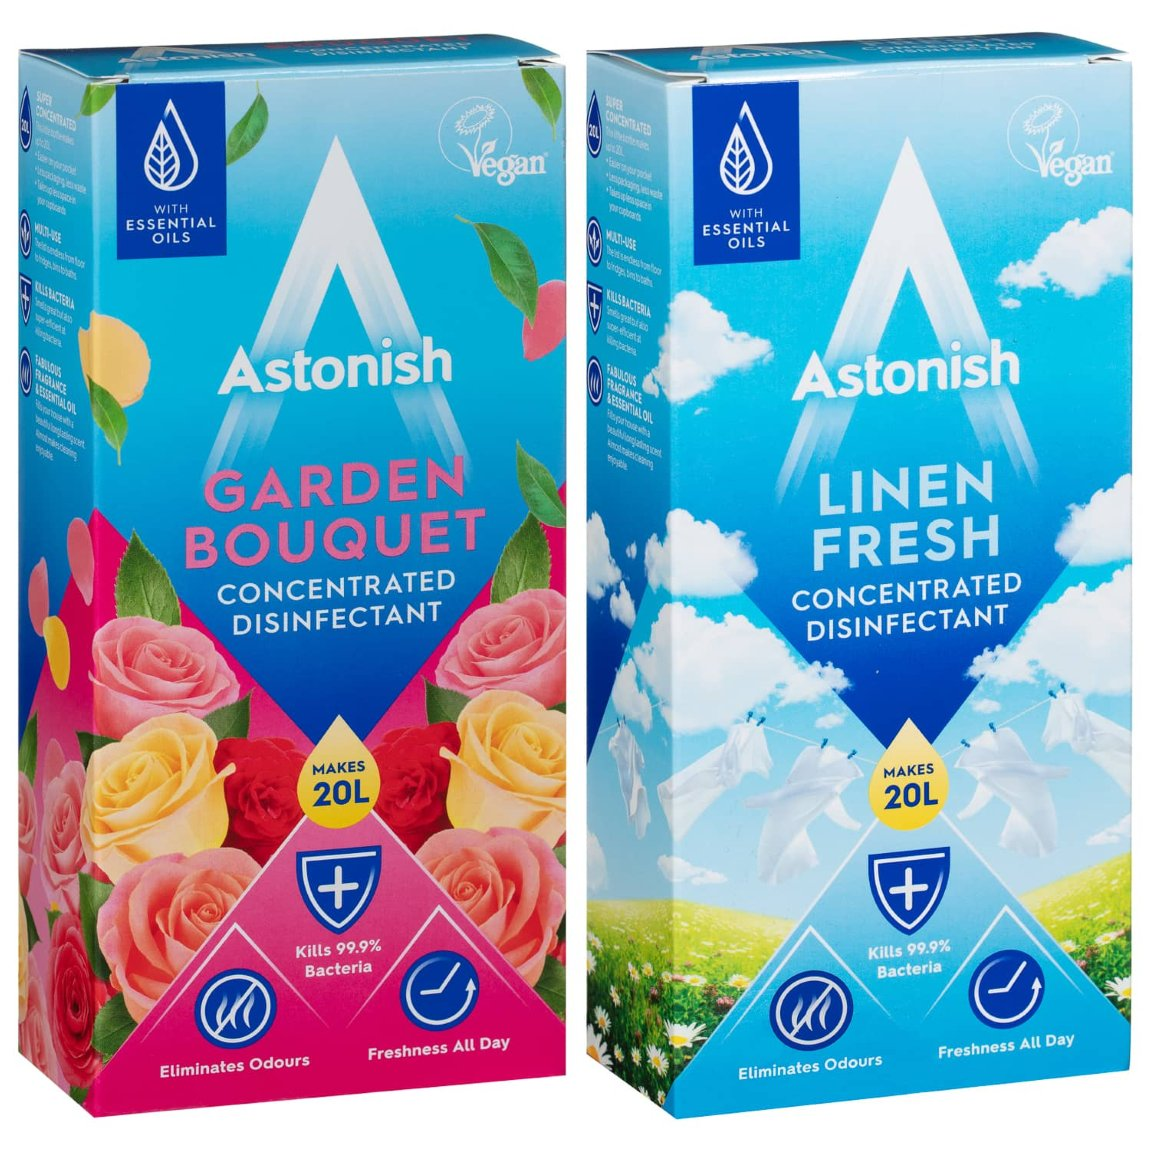 Astonish Concentrated Disinfectant 500ml - Linen Fresh